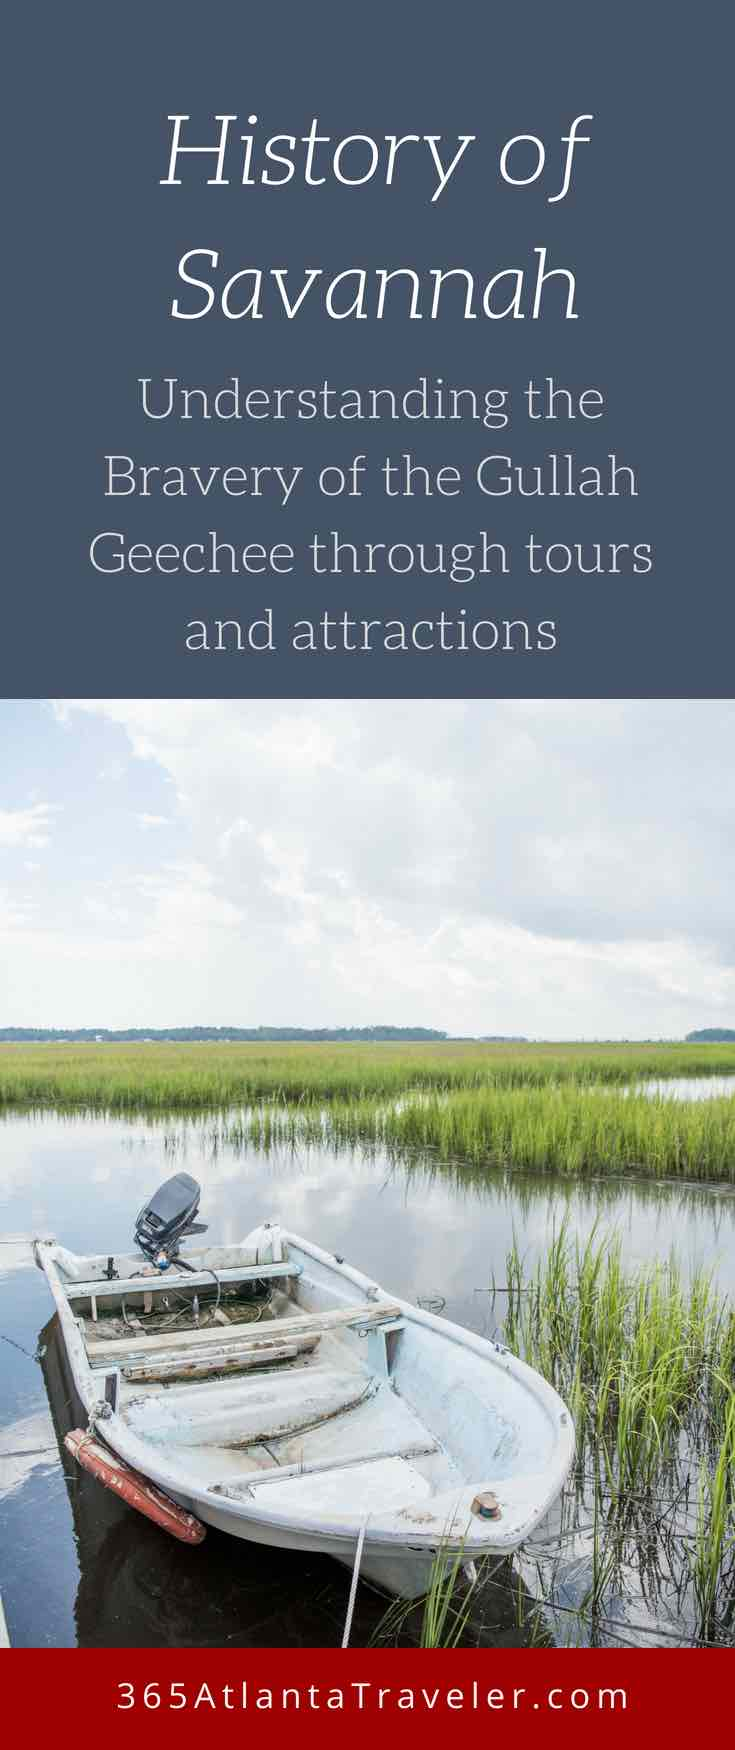 When we delve into the history of Savannah, rarely do we hear about the African slave experience. On your next trip to Savannah, celebrate the bravery of the Gullah Geechee people. This post lists tours, museums and attractions to learn more and give you the complete picture of Savannah history. This post contains video too.